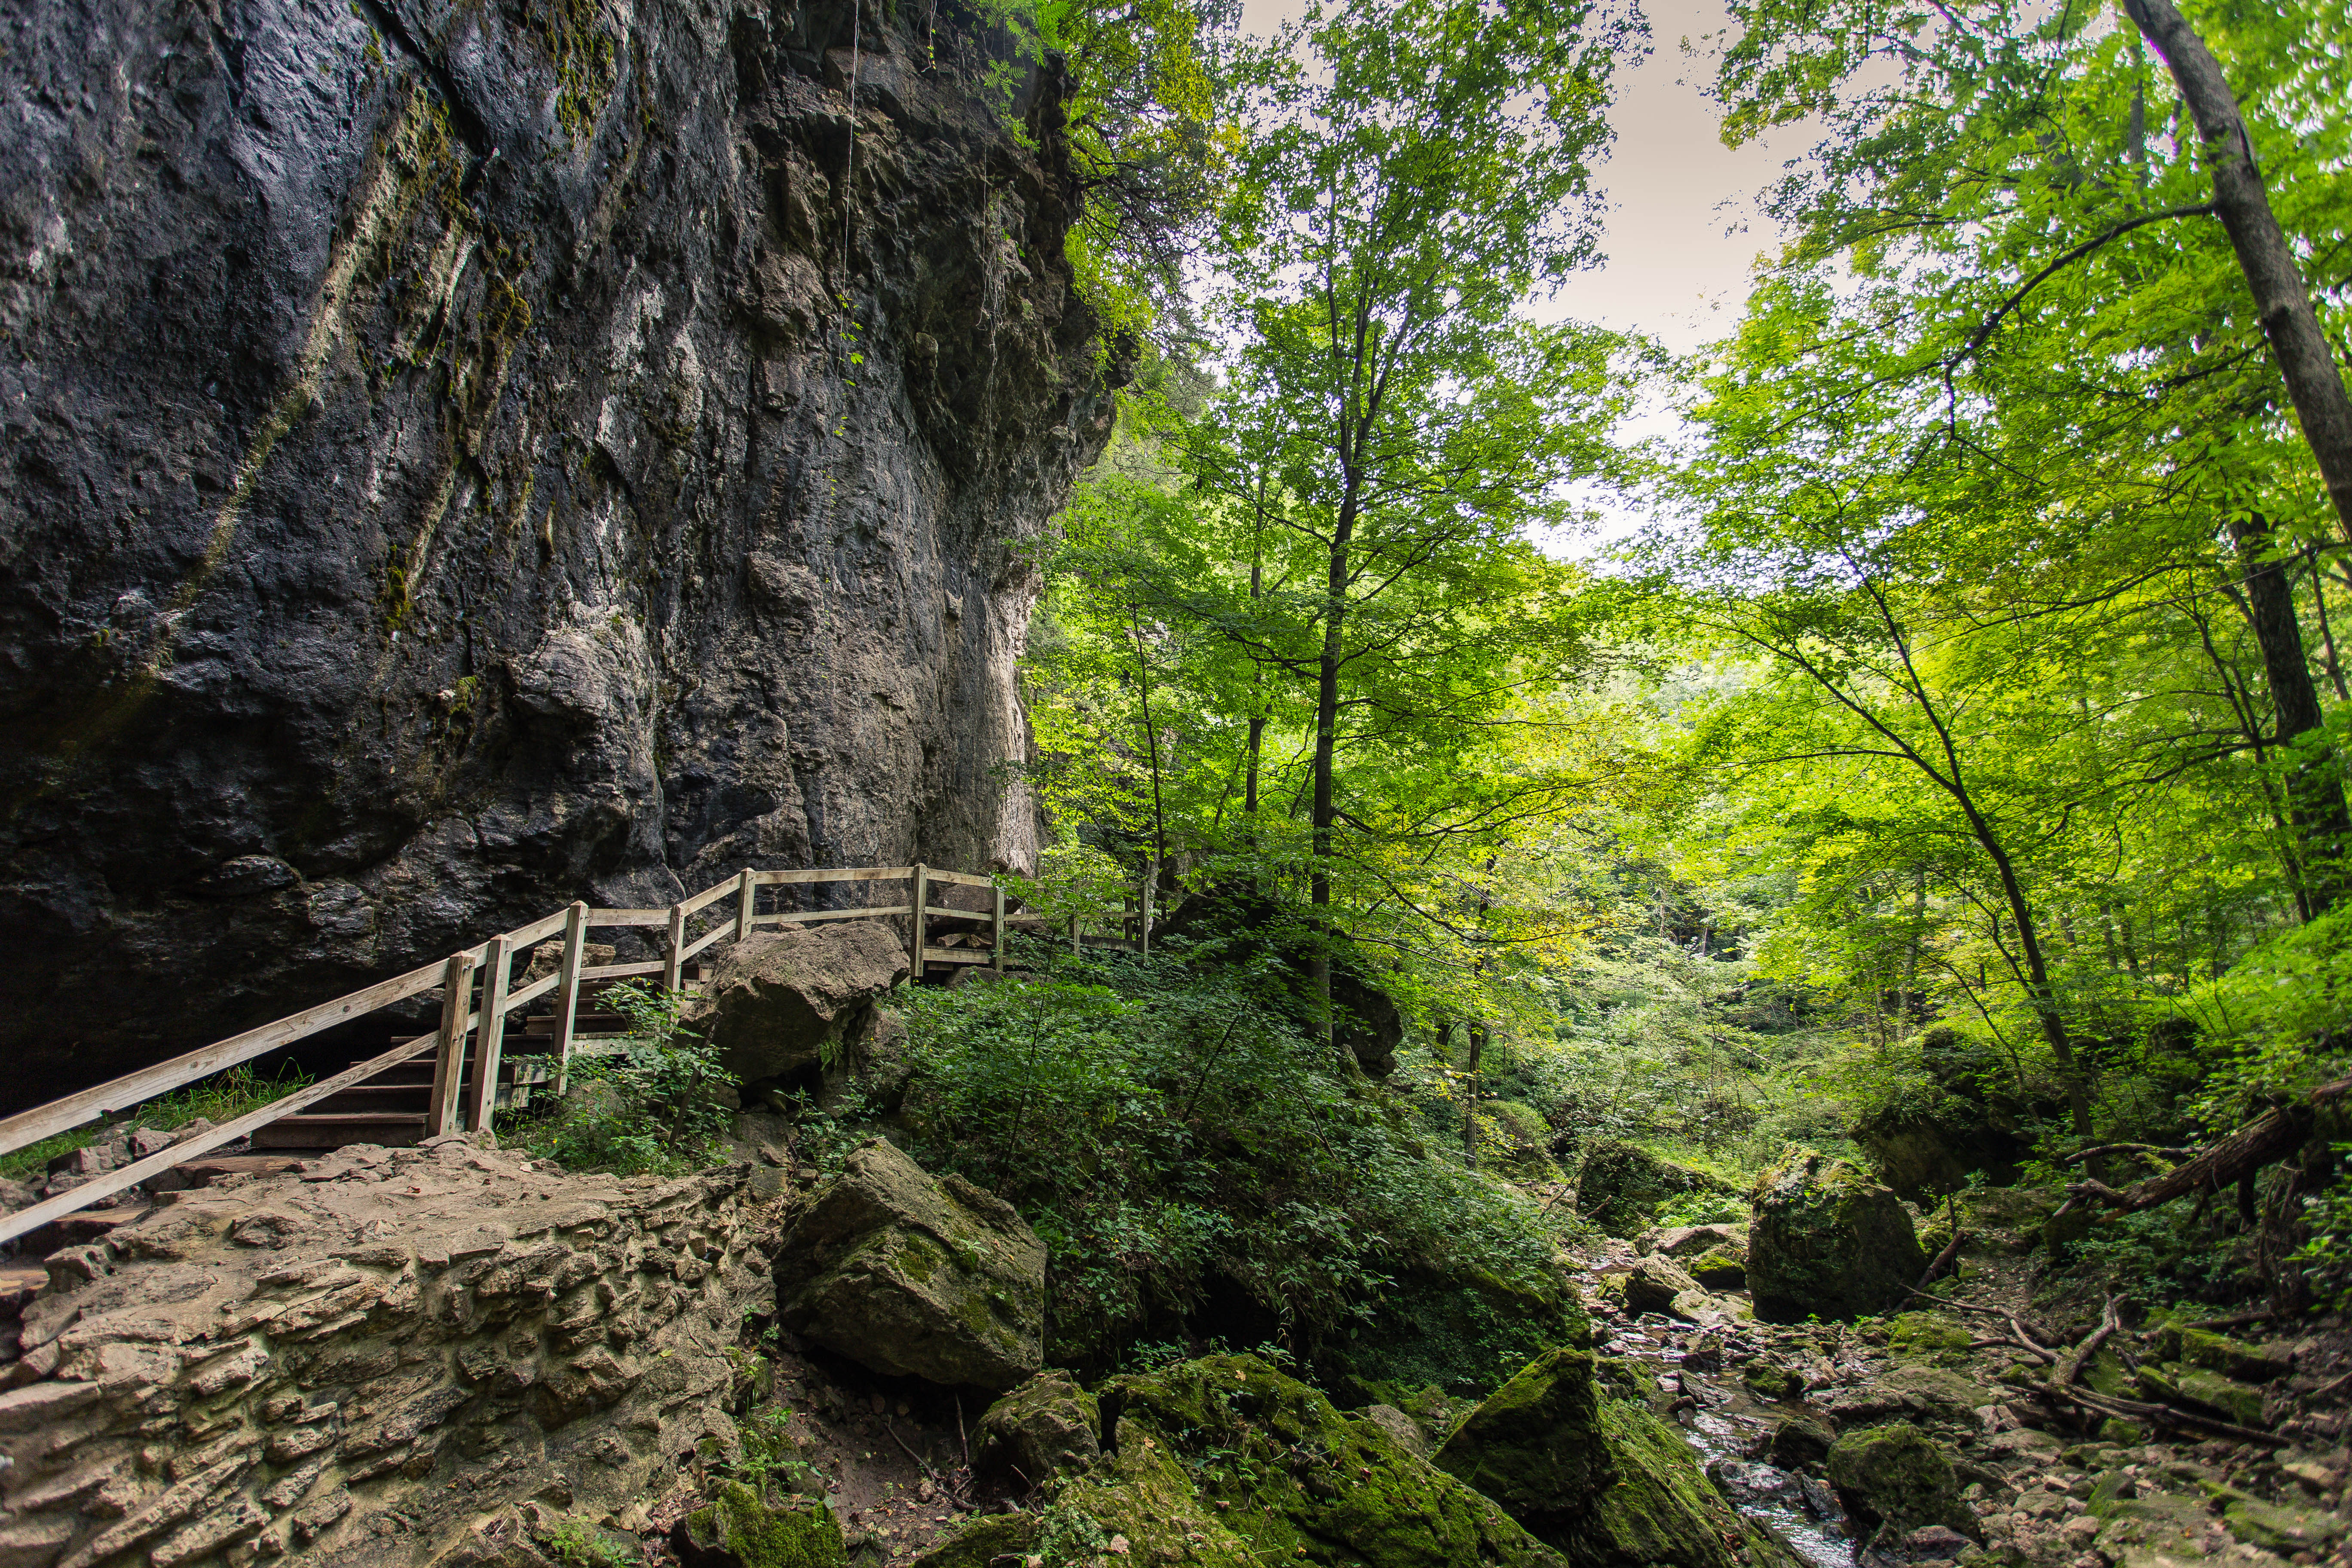 Maquoketa Caves is one of Iowa's most Instagrammed state parks. Photo by Bernice Ticknor | Iowa DNR